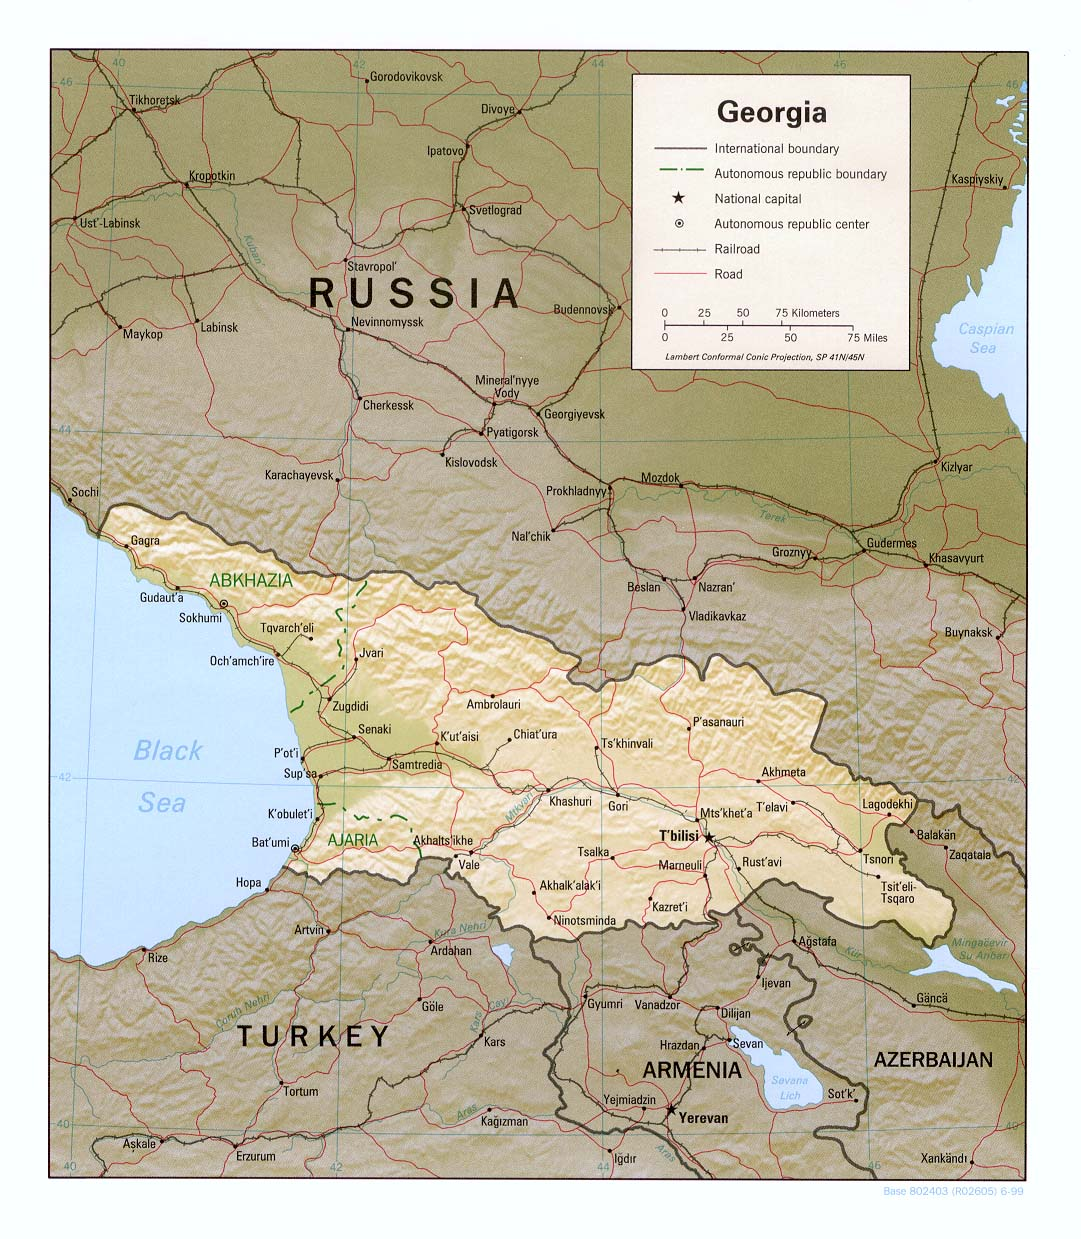 Maps Of Georgia Georgia Country Map on georgia usa, chechnya map, georgia topographic map, georgia ukraine map, georgia the country, georgia russia map, republic of georgia map, georgia's map, azerbaijan map, georgia regions map, world map, georgia europe, eastern europe map, georgia state map, nation of georgia map, georgia county map, georgia country people, georgia brewery map, georgia political map, armenia map,